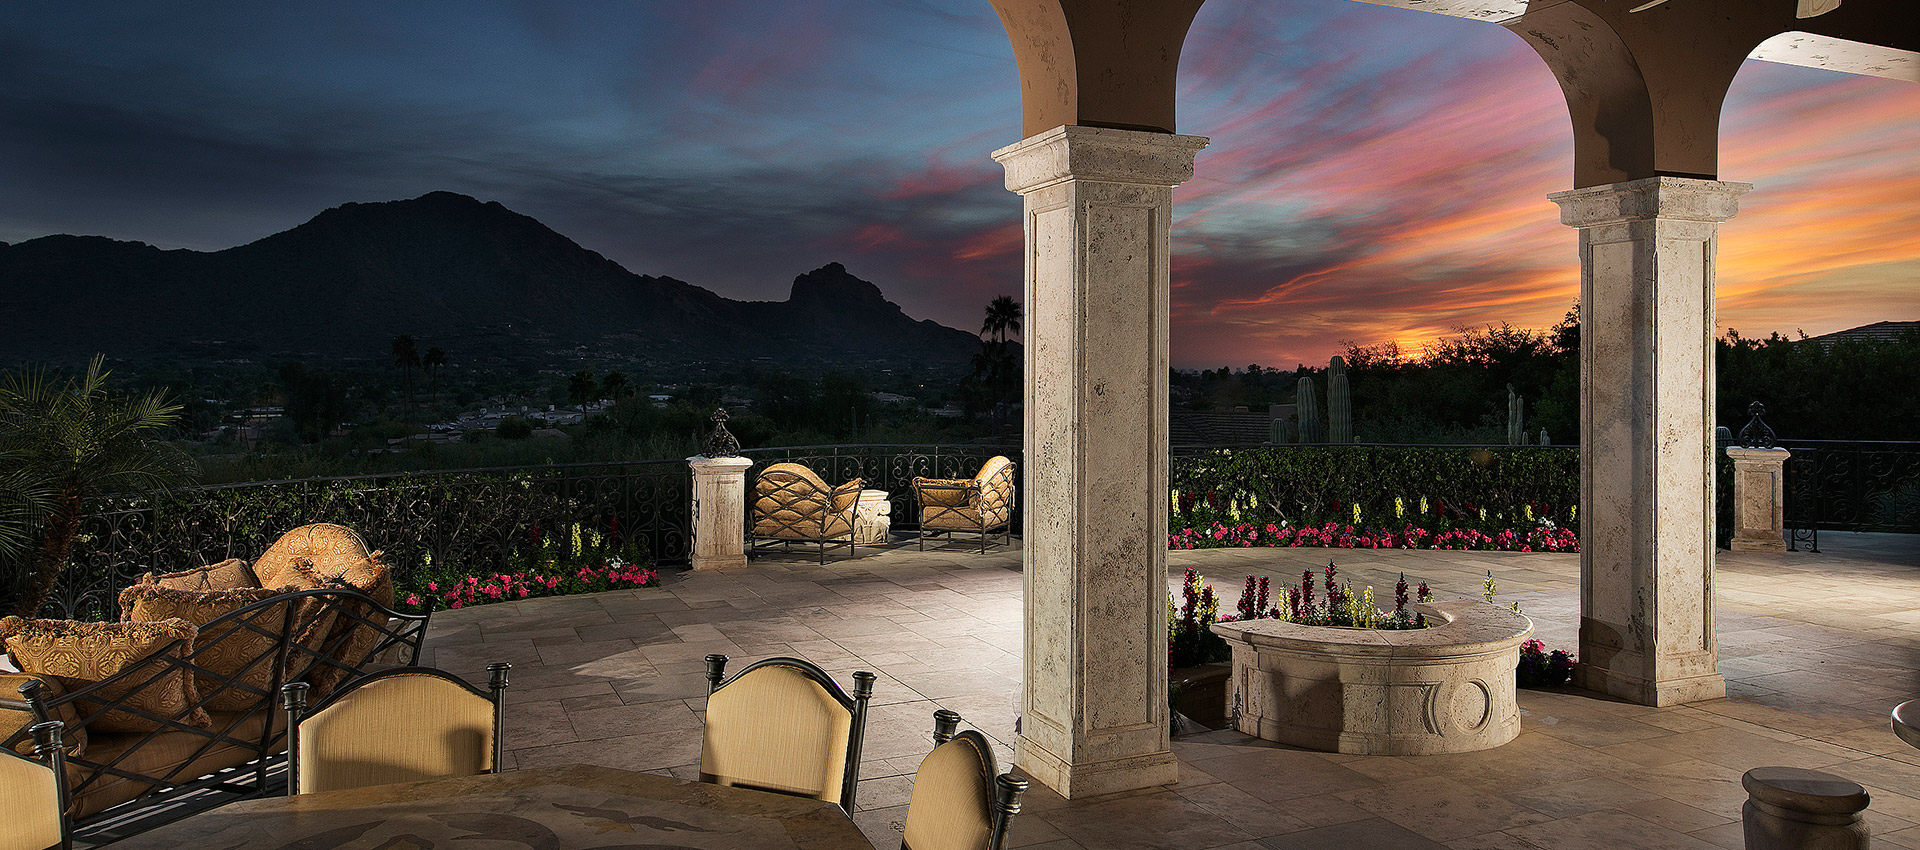 Exclusive Listing in Paradise Valley with views of Camelback Mountain | $5.2m | Joyce Lynch 602-722-1668